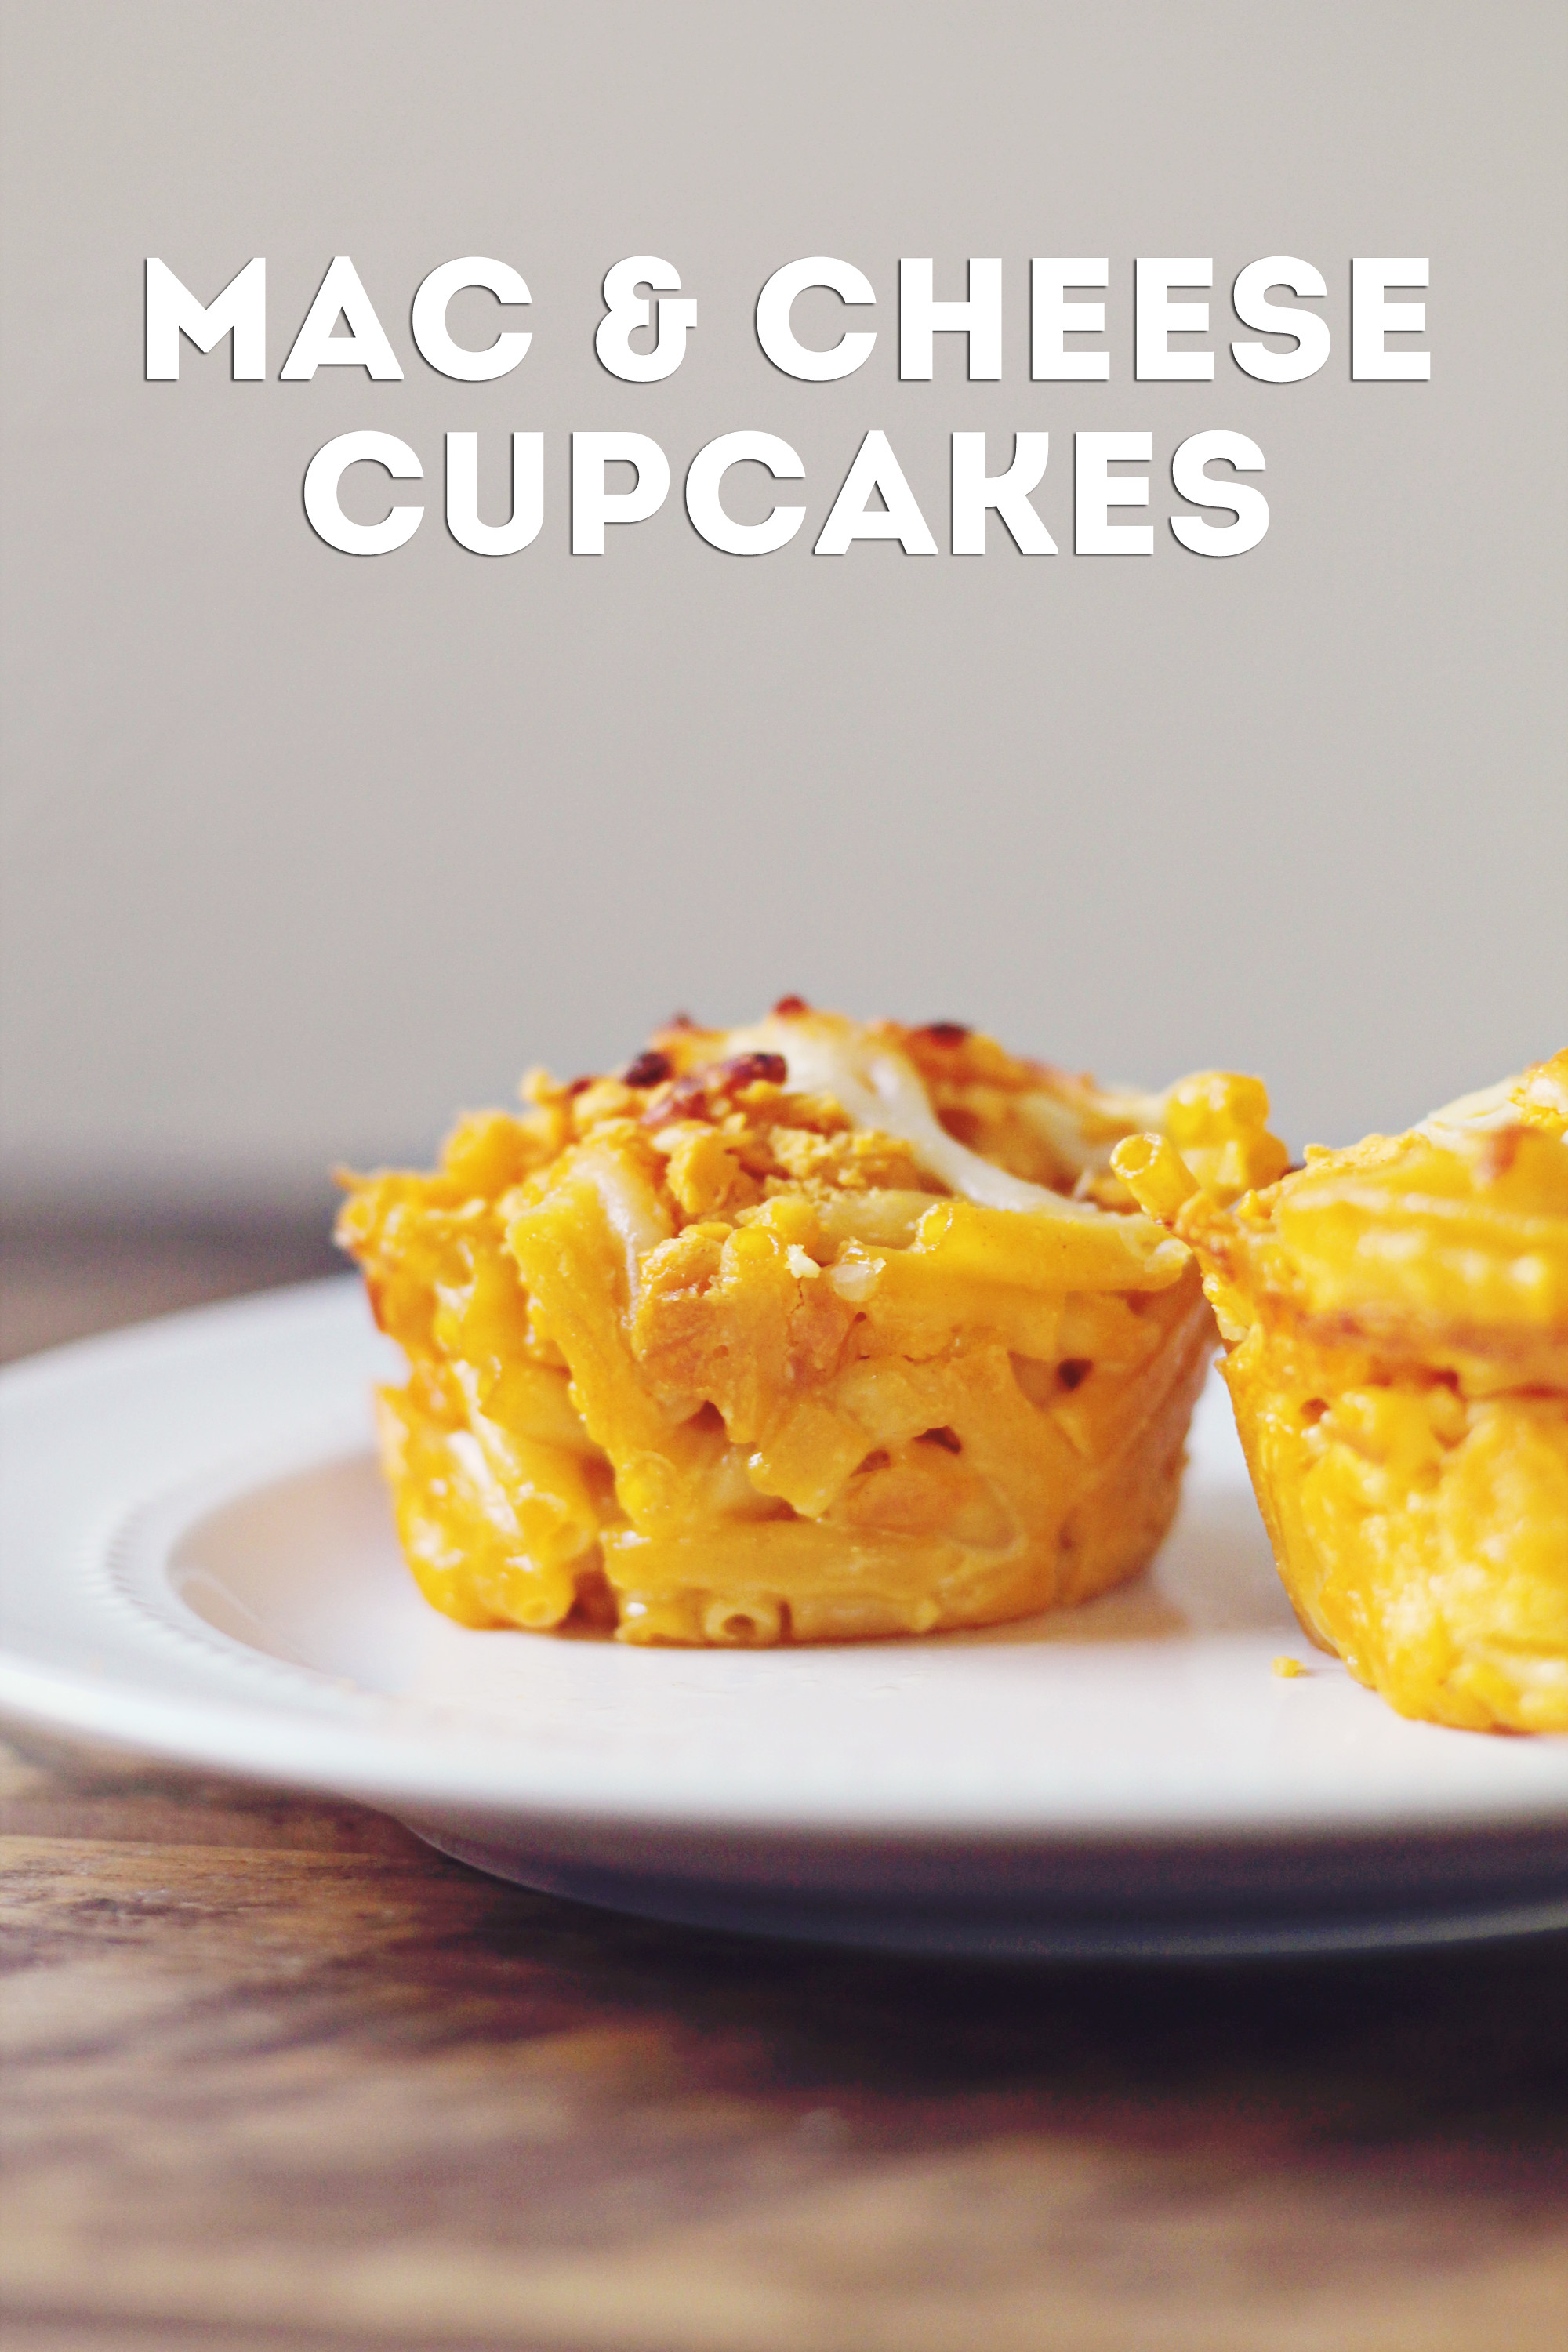 Mac And Cheese Cupcakes  Mac & Cheese Cupcake Recipe Sunny with a Chance of Sprinkles